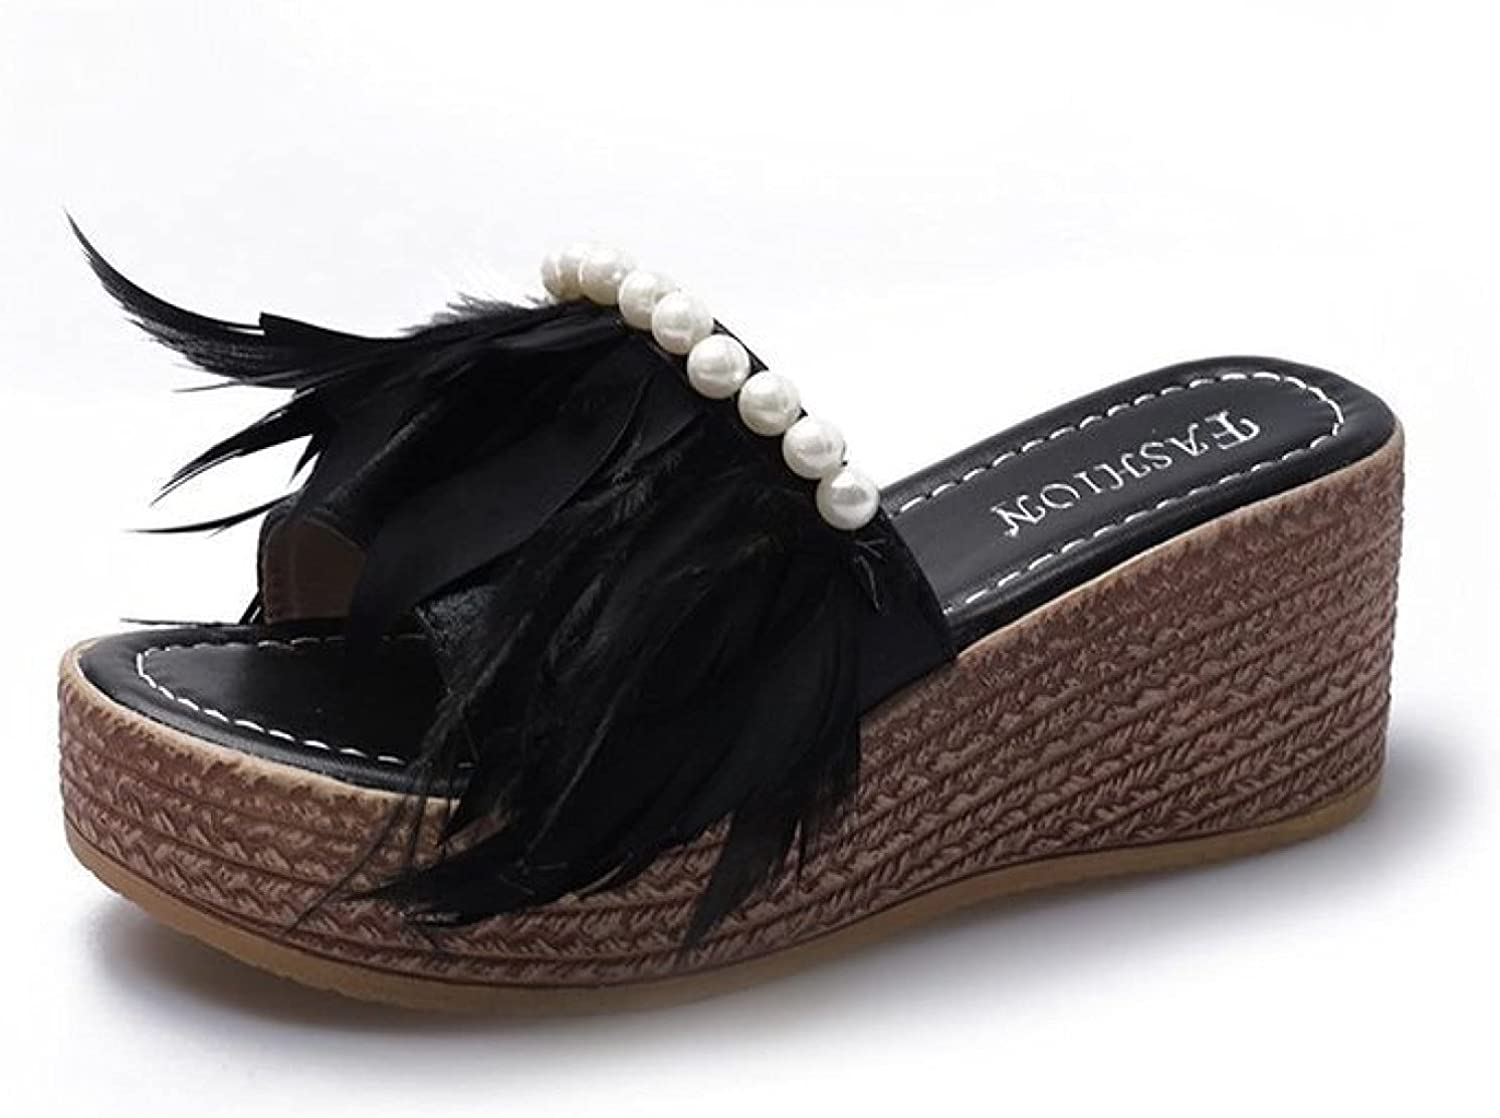 Espadrilles Open Free shipping on posting reviews Toe Wedge Slides Casual for Slipper Women's Genuine Free Shipping Pea